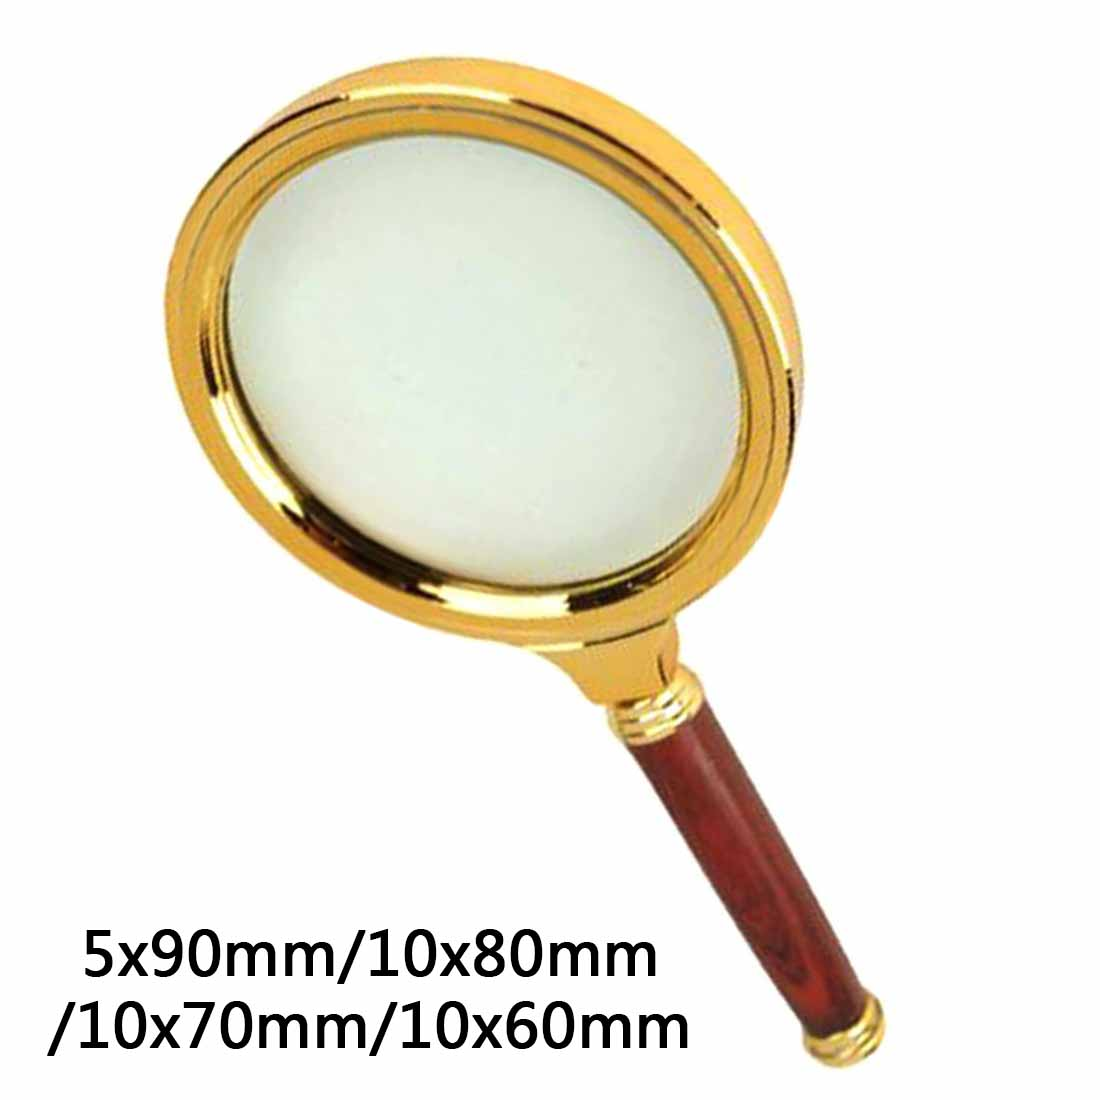 90mm/80mm/70mm/60mm Handheld 5X/10X Magnifier Magnifying Glass Loupe Reading Jewelry Eye Loupe Magnifier Repair Tool 10x magnifying glass 60mm portable handheld magnifier for jewelry newspaper book reading high definition eye loupe glass